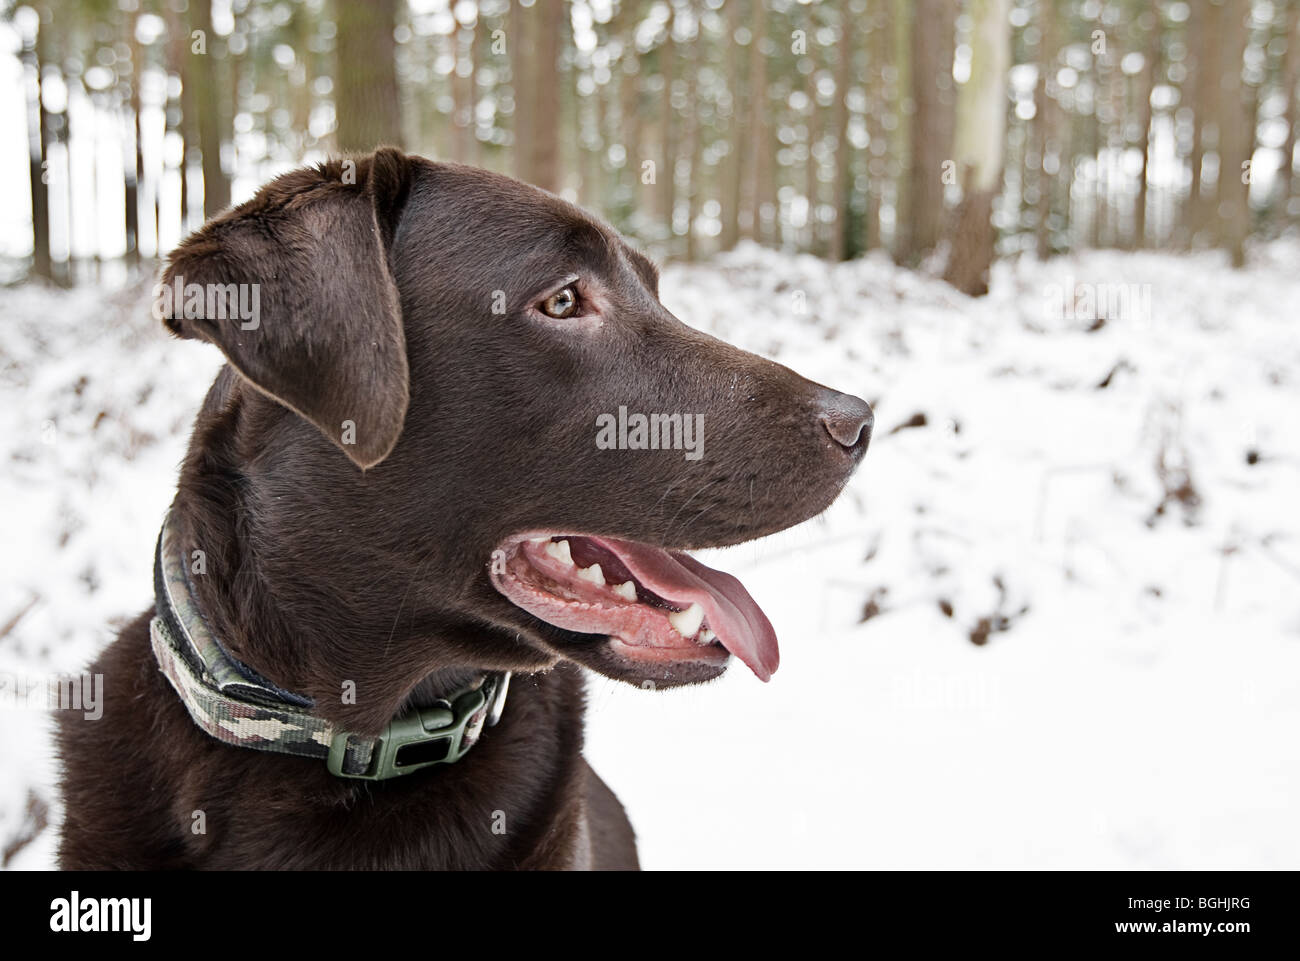 Profile Shot of a Handsome Chocolate Labrador in the Snowy Countryside - Stock Image